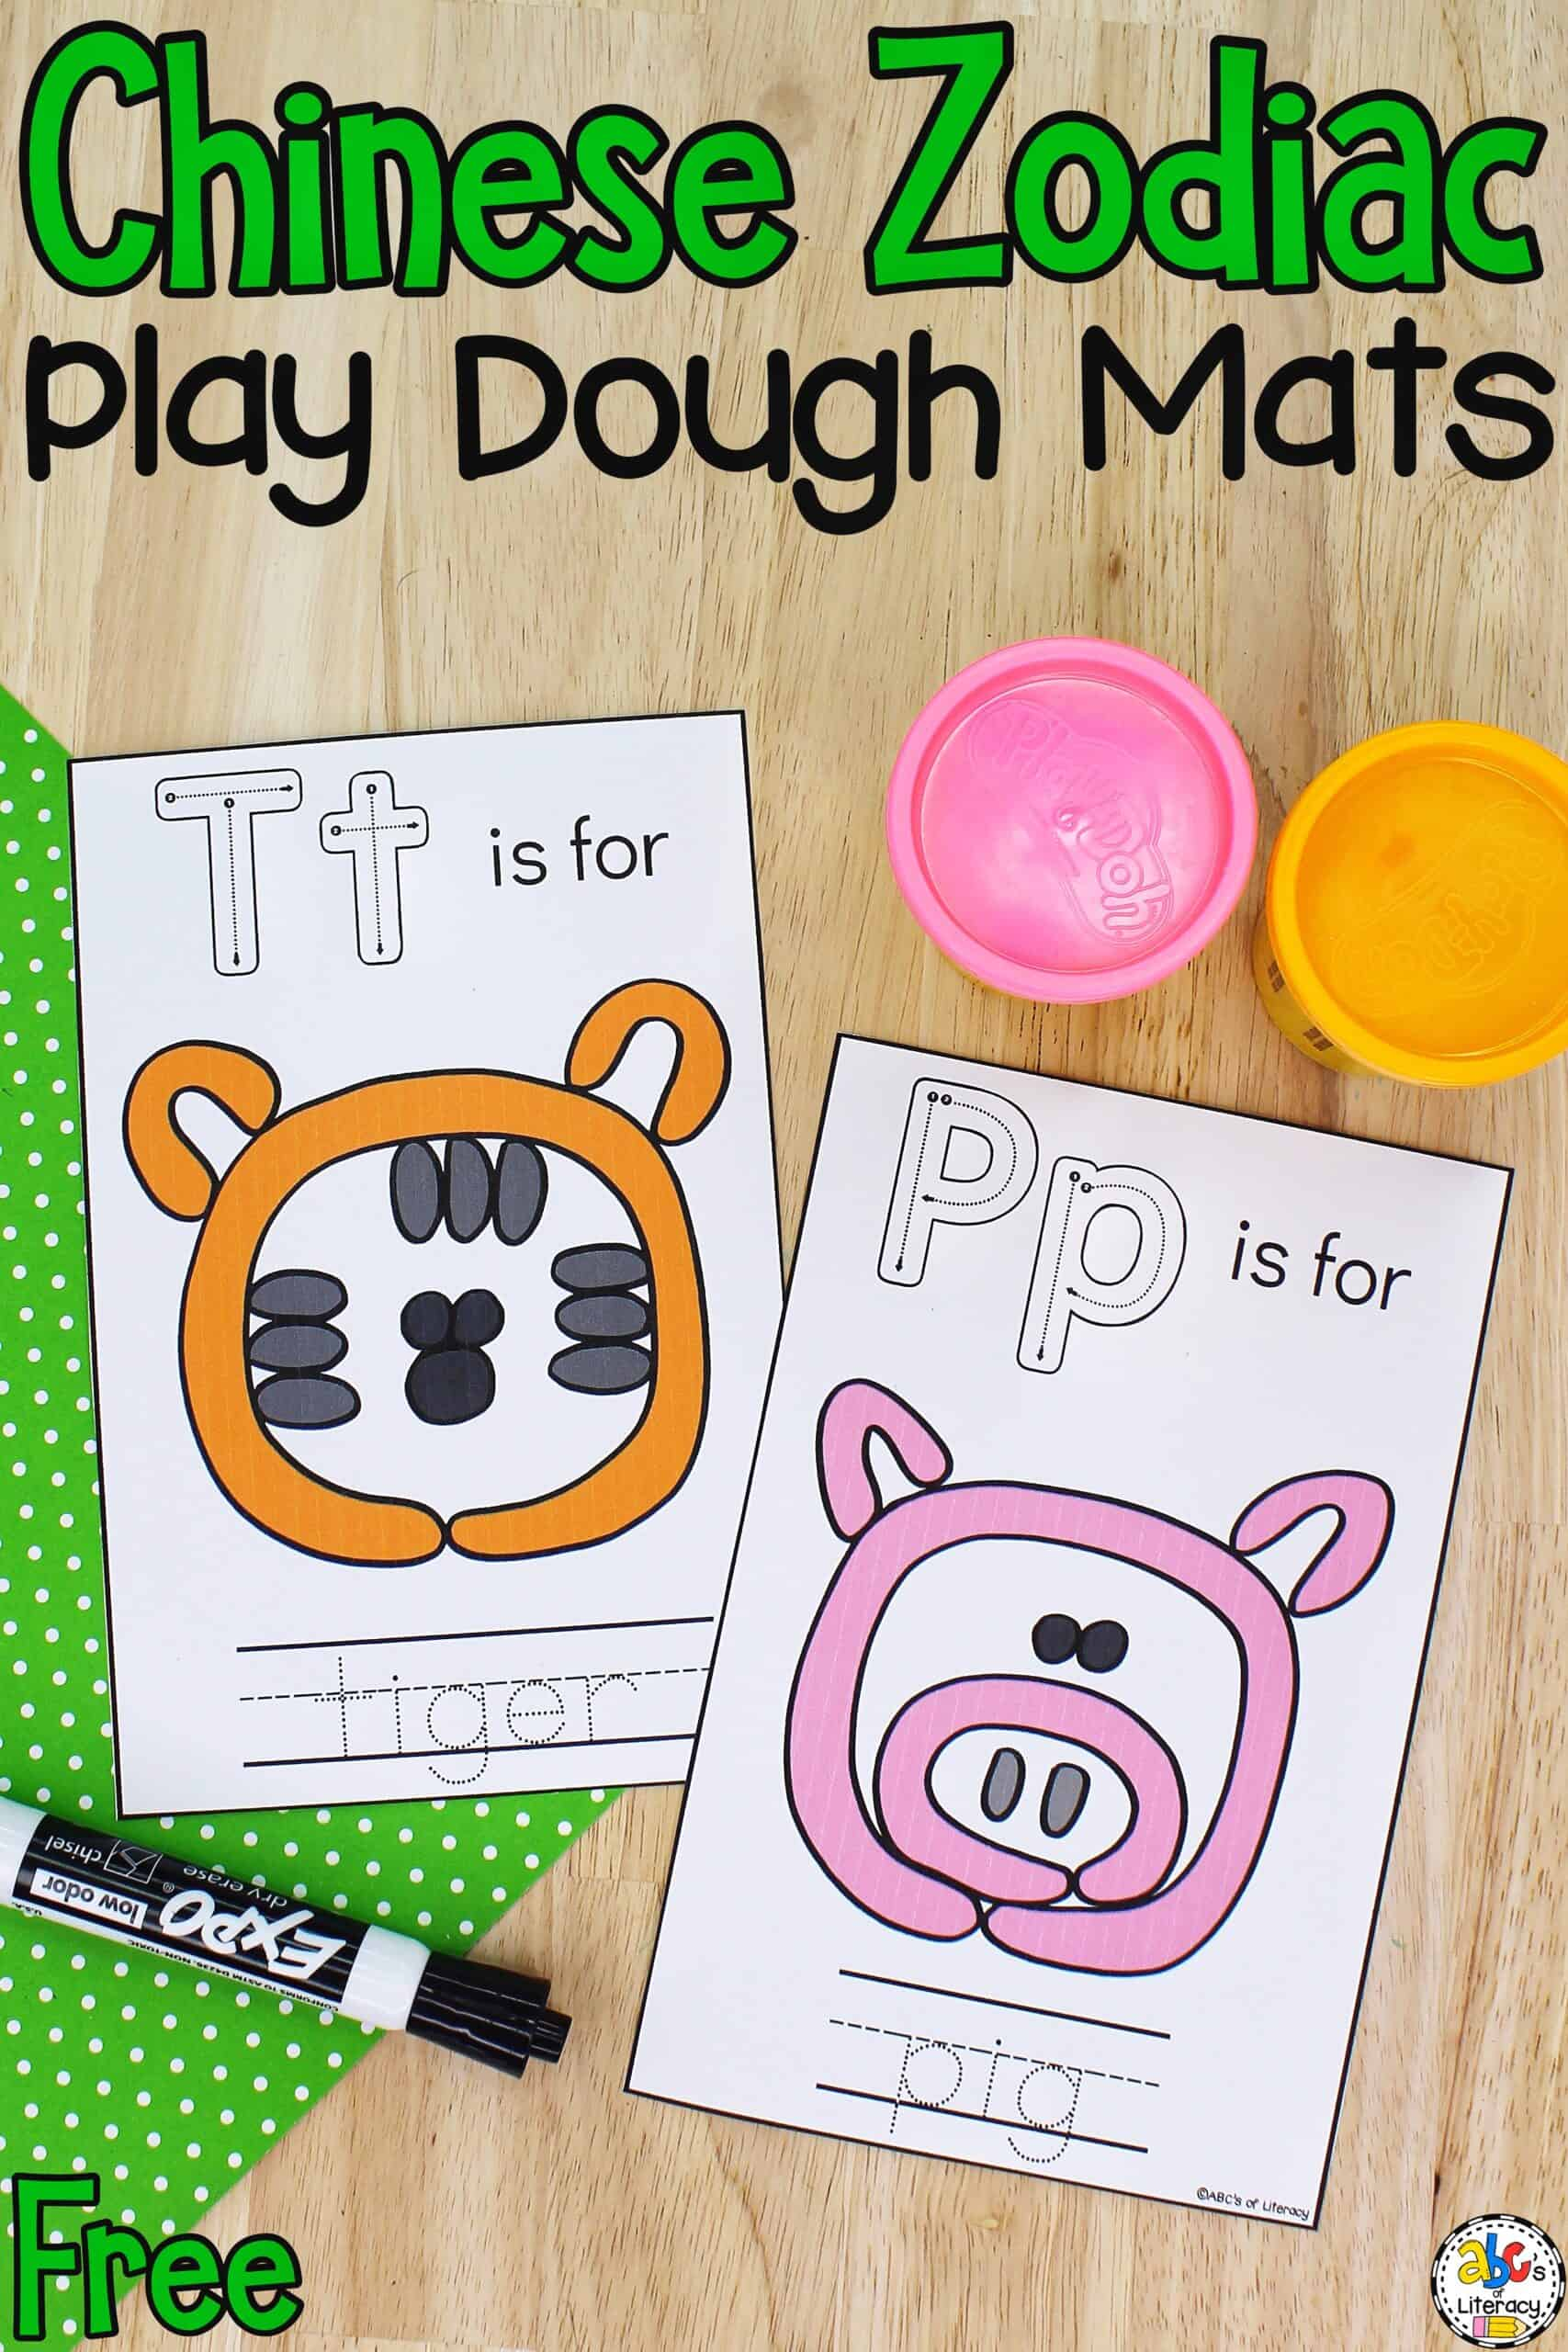 Chinese Zodiac Play Dough Mats